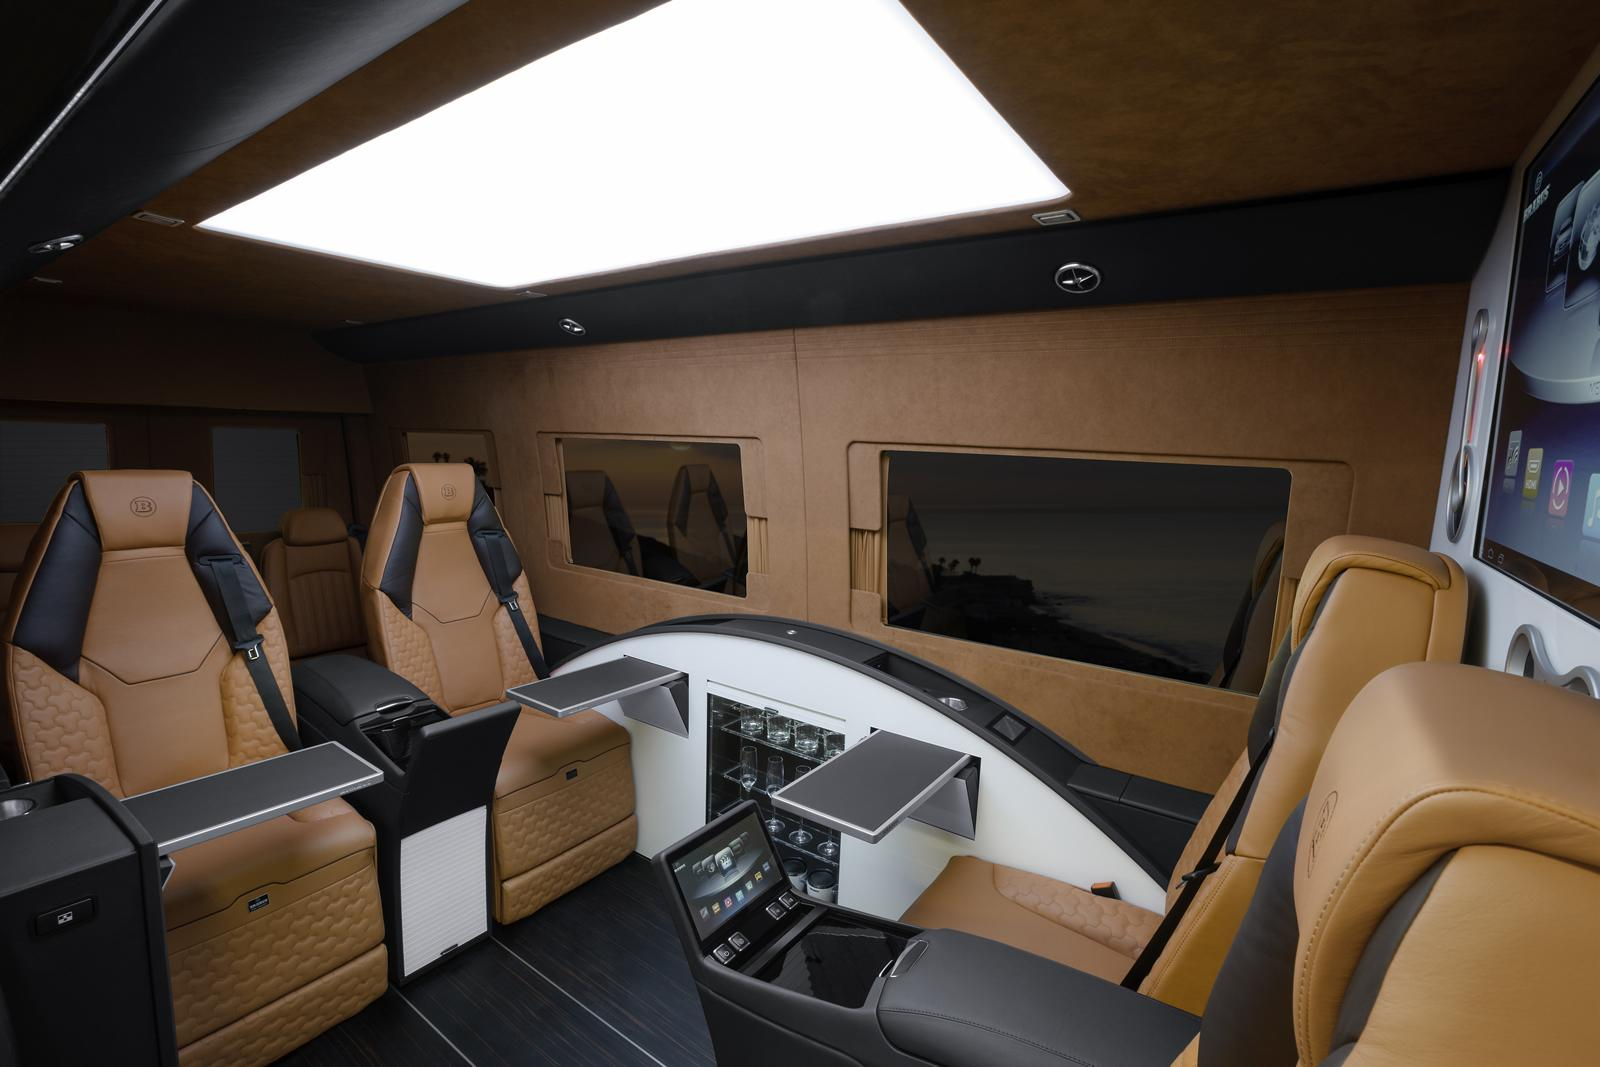 Brabus business lounge revista del motor - The mobile office working on two wheels ...